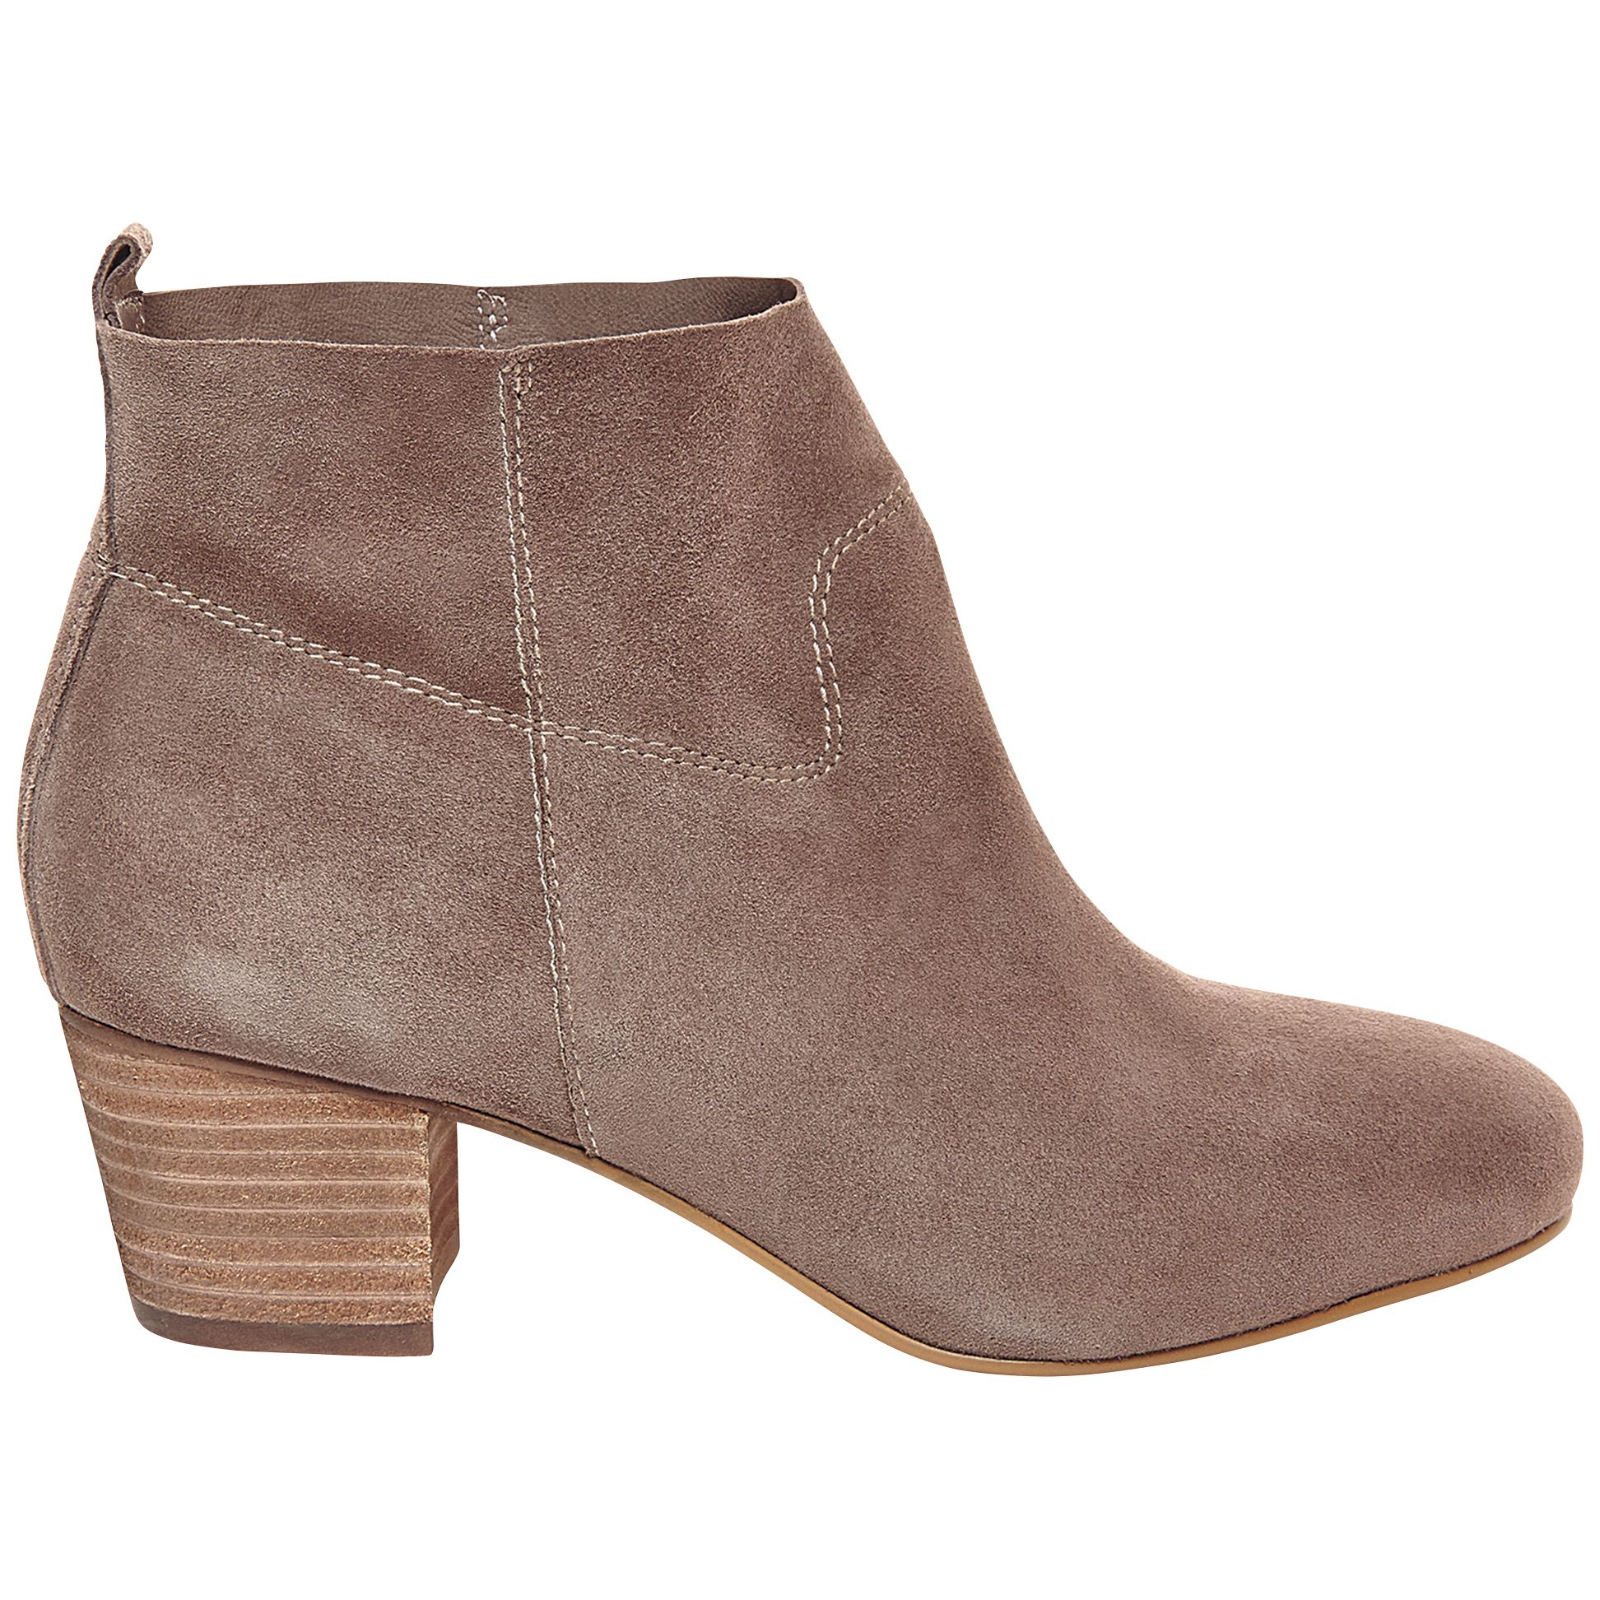 Wouomo Steve Madden Harber avvio Taupe Dimensione 7  NK5LW-701